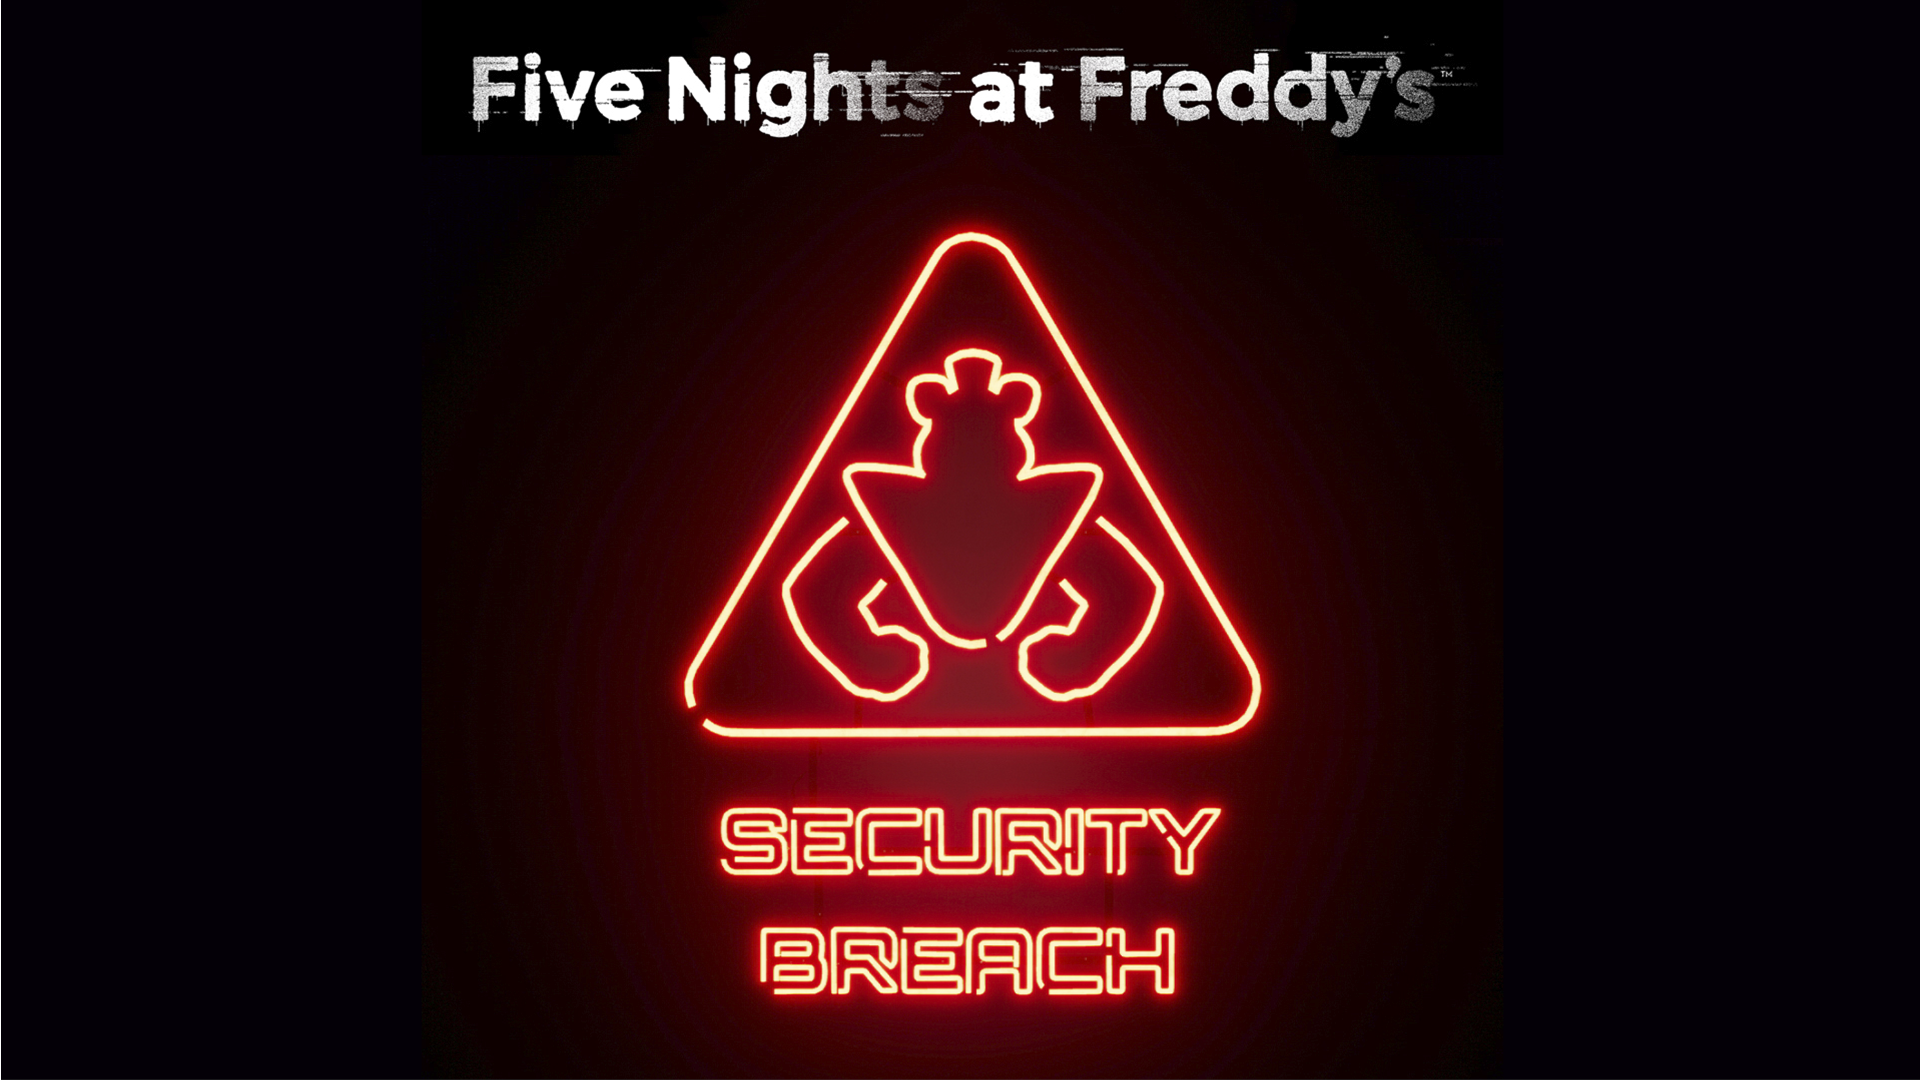 Five Nights at Freddy's: Security Breach - στοιχείο προώθησης